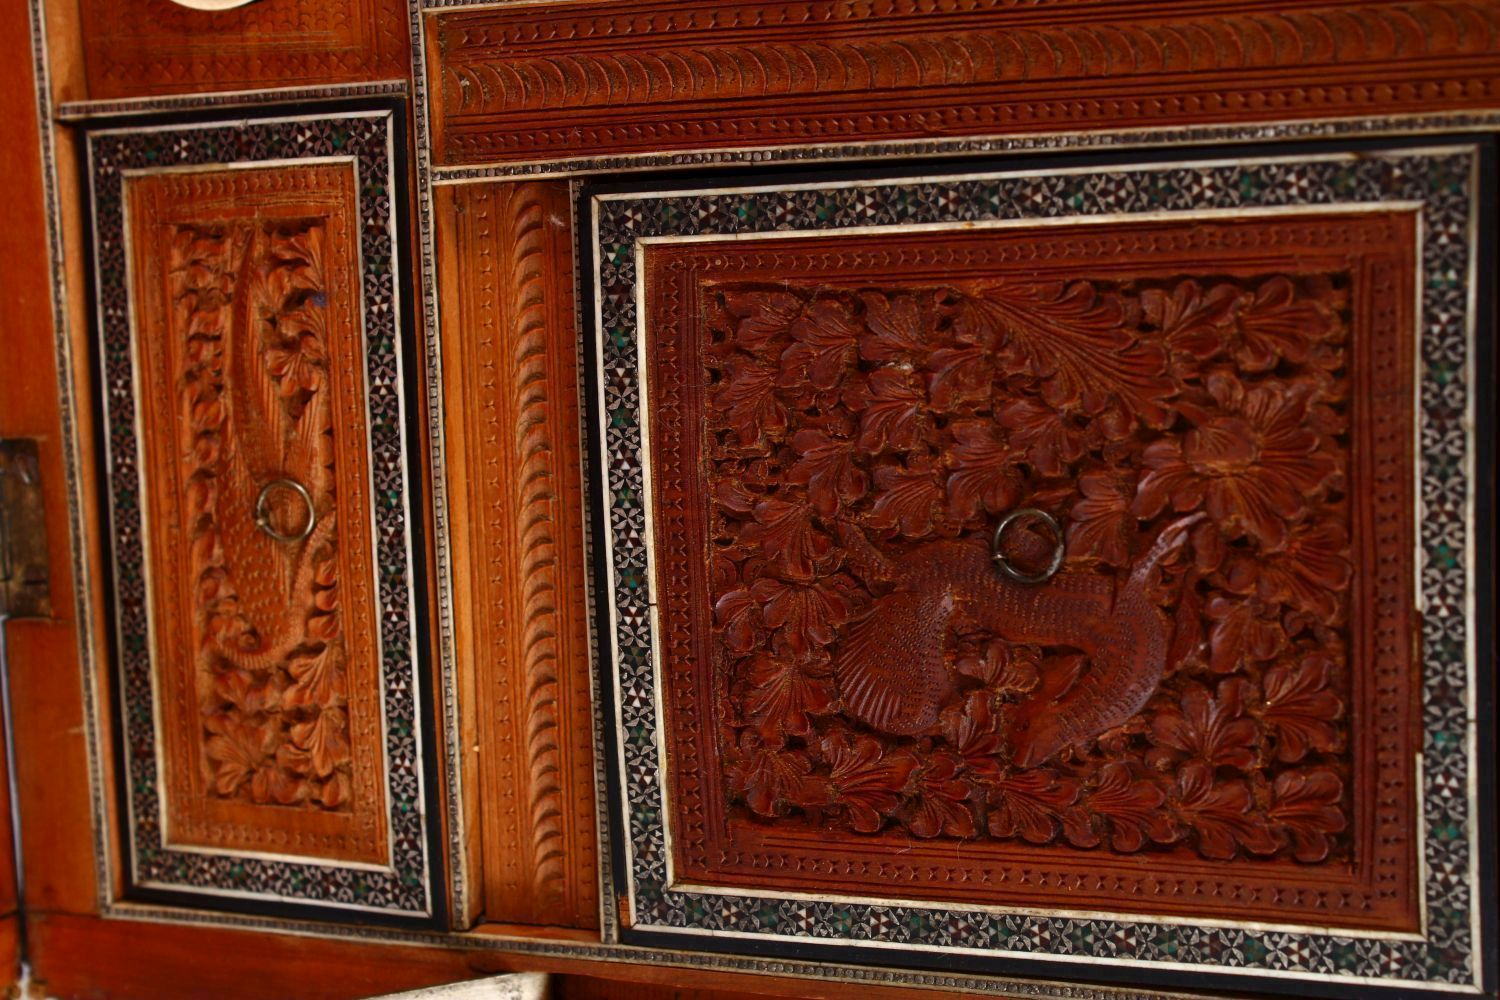 A 19TH CENTURY ANGLO INDIAN INLAID LIDDED SEWING BOX, with carved wood depicting figures and animals - Image 5 of 10